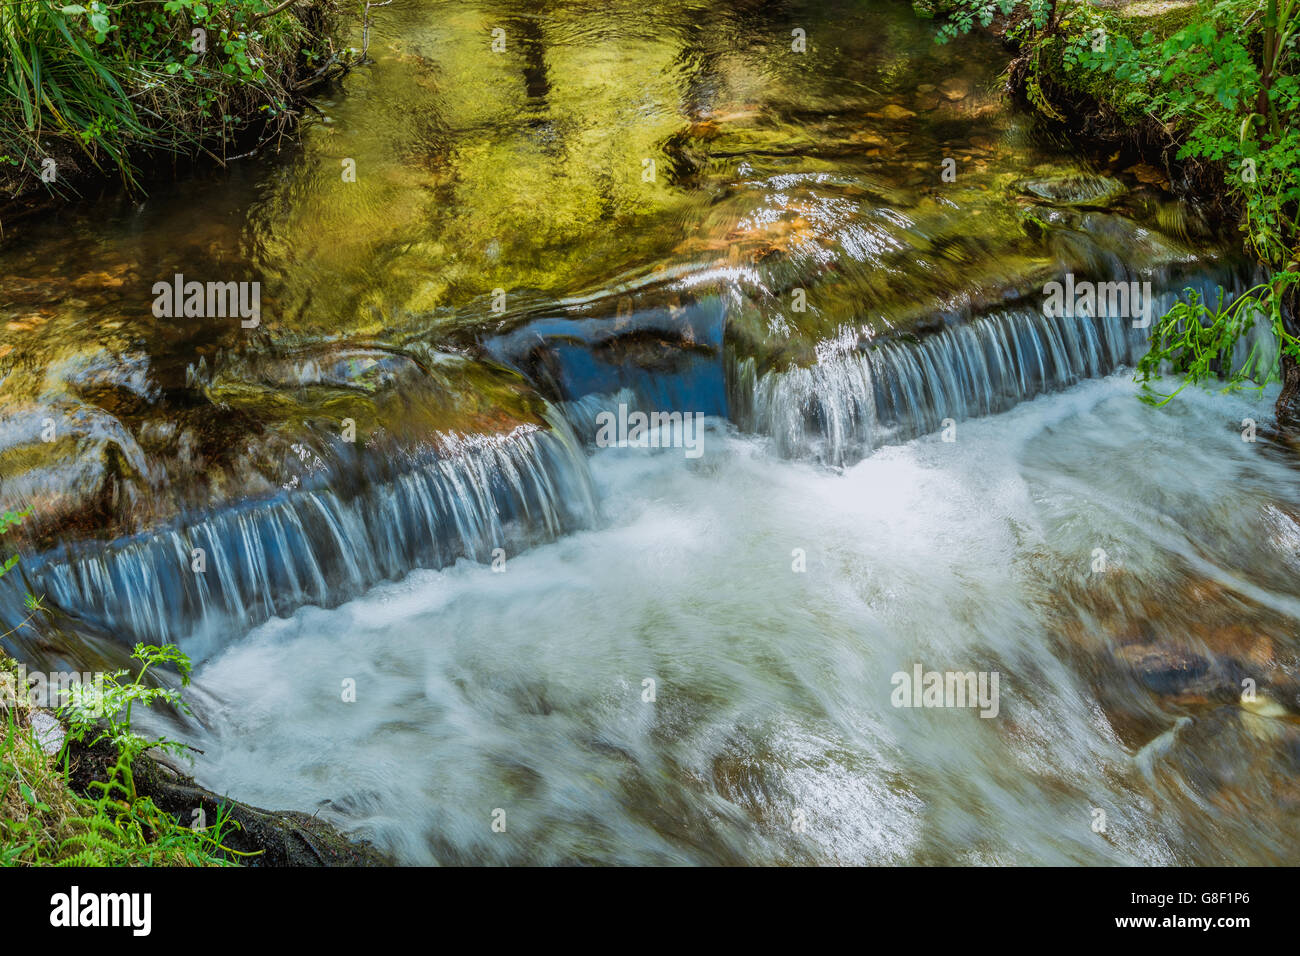 Close View of Man Made Water Sluice on a River - Stock Image